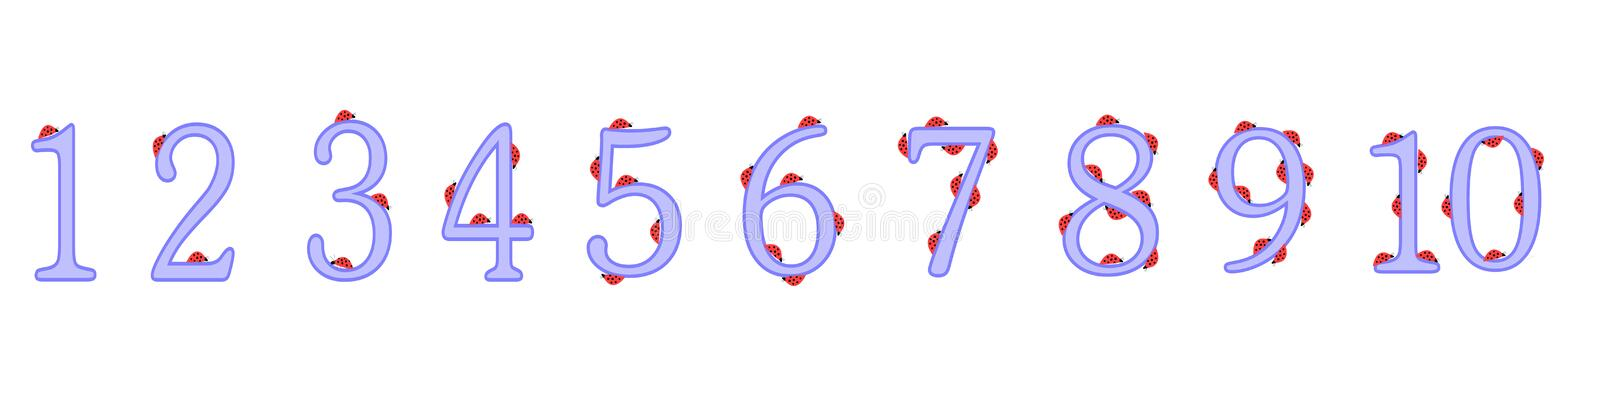 numbers 1 to 10 for childrens education royalty free stock image